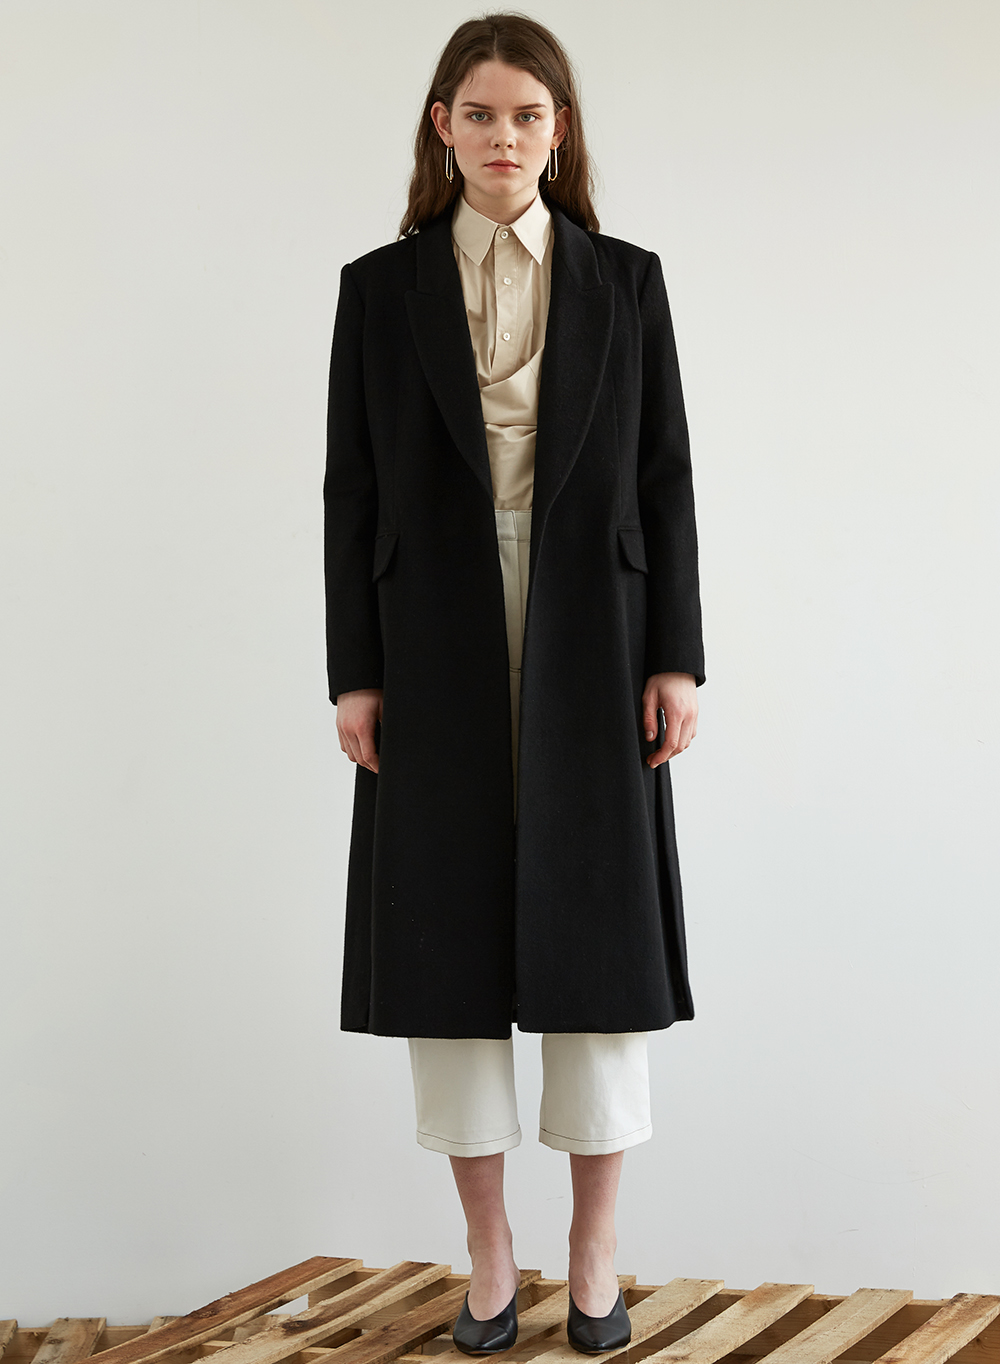 FW18 HIDDEN SINGLE COAT BLACK